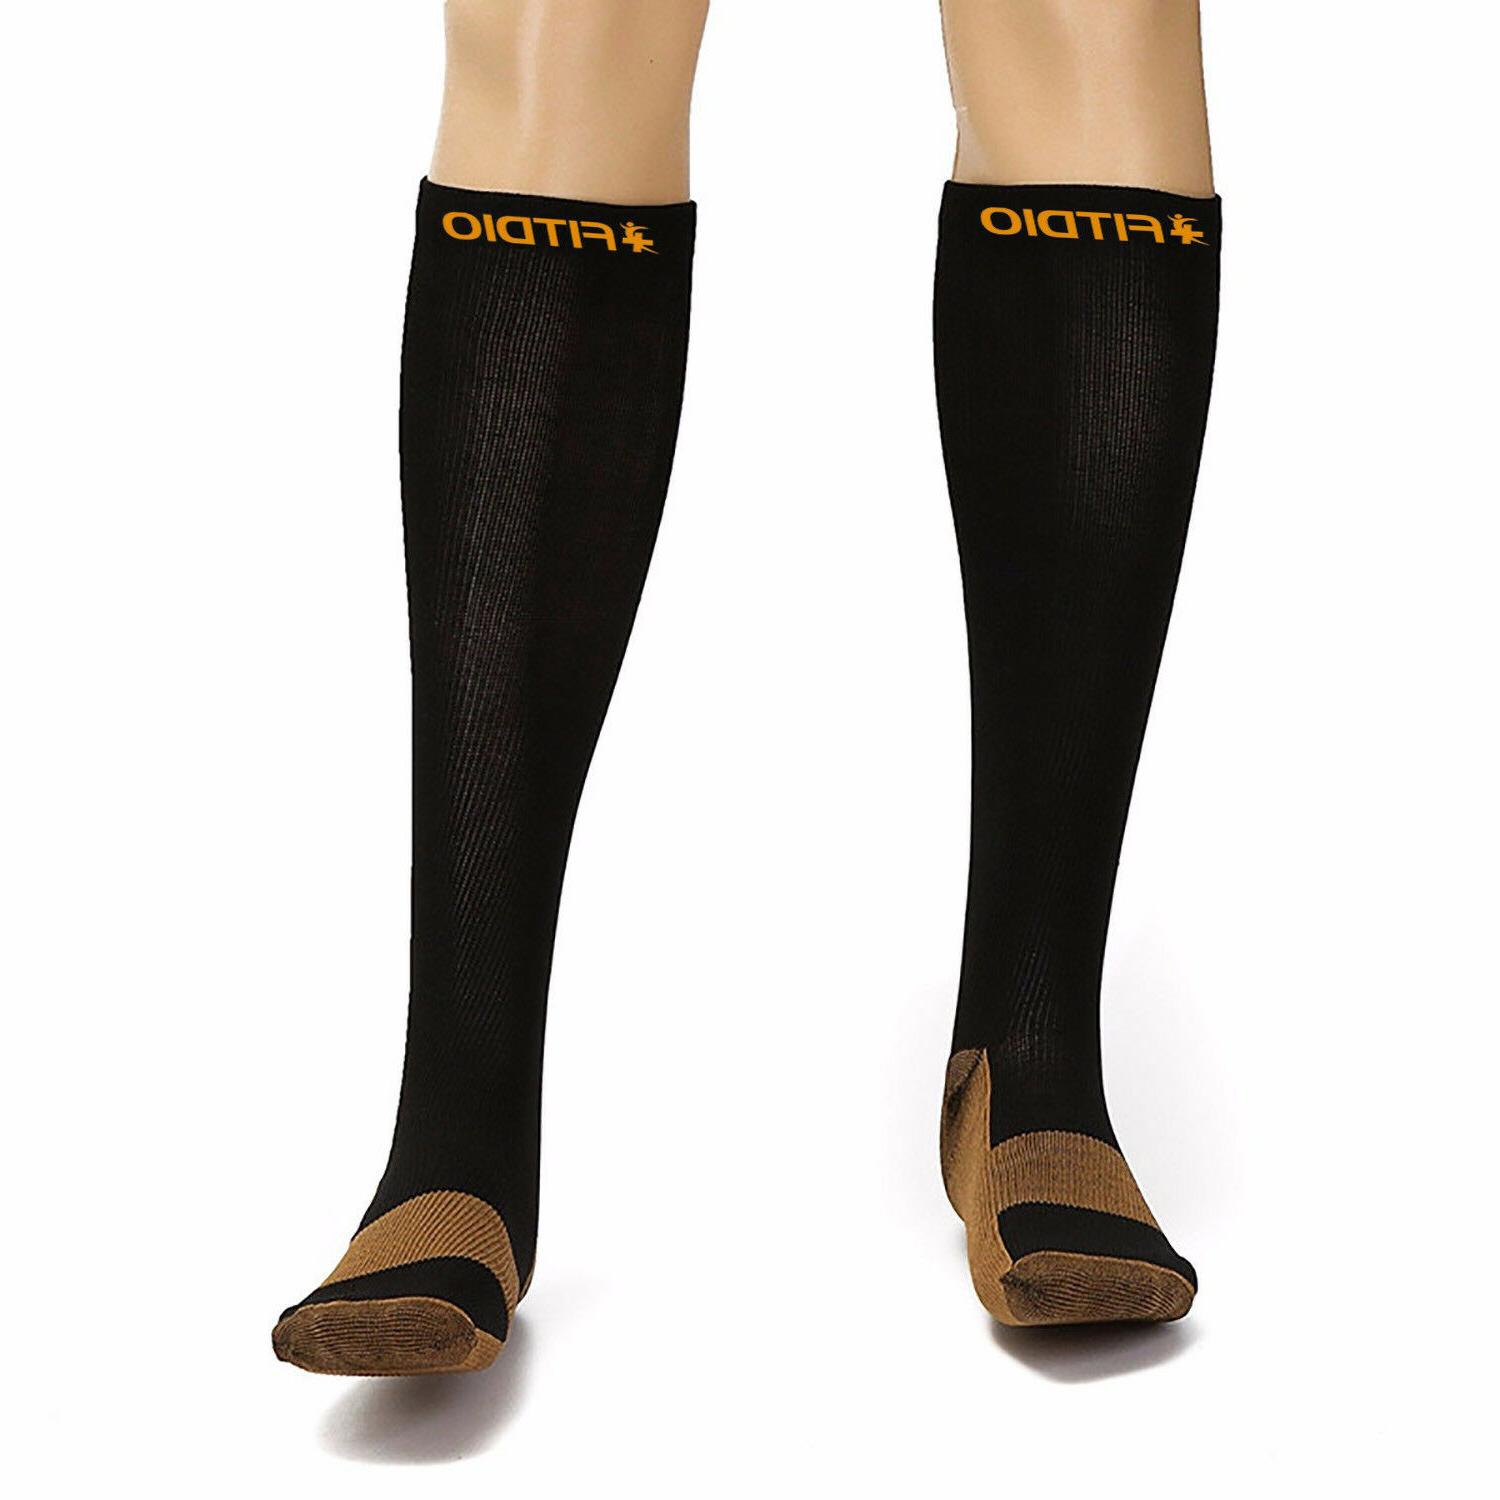 Plus Size Knee High Anti-Fatigation Infused Compression Socks